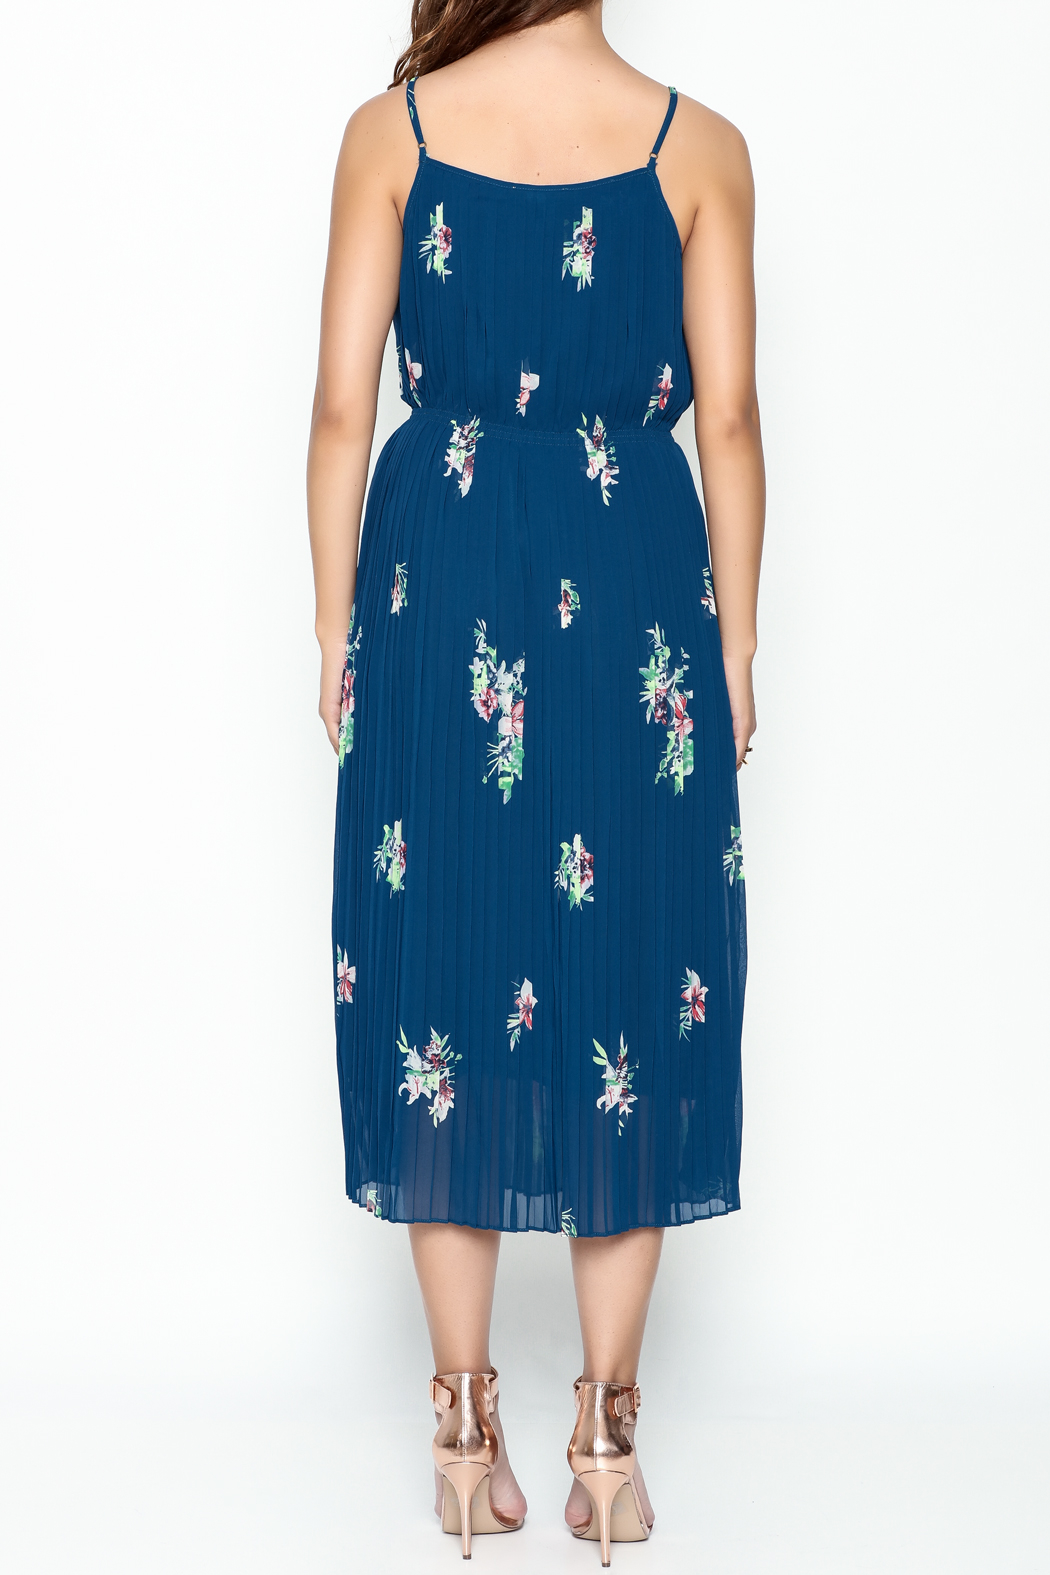 Current Air Pleated Cami Dress - Back Cropped Image